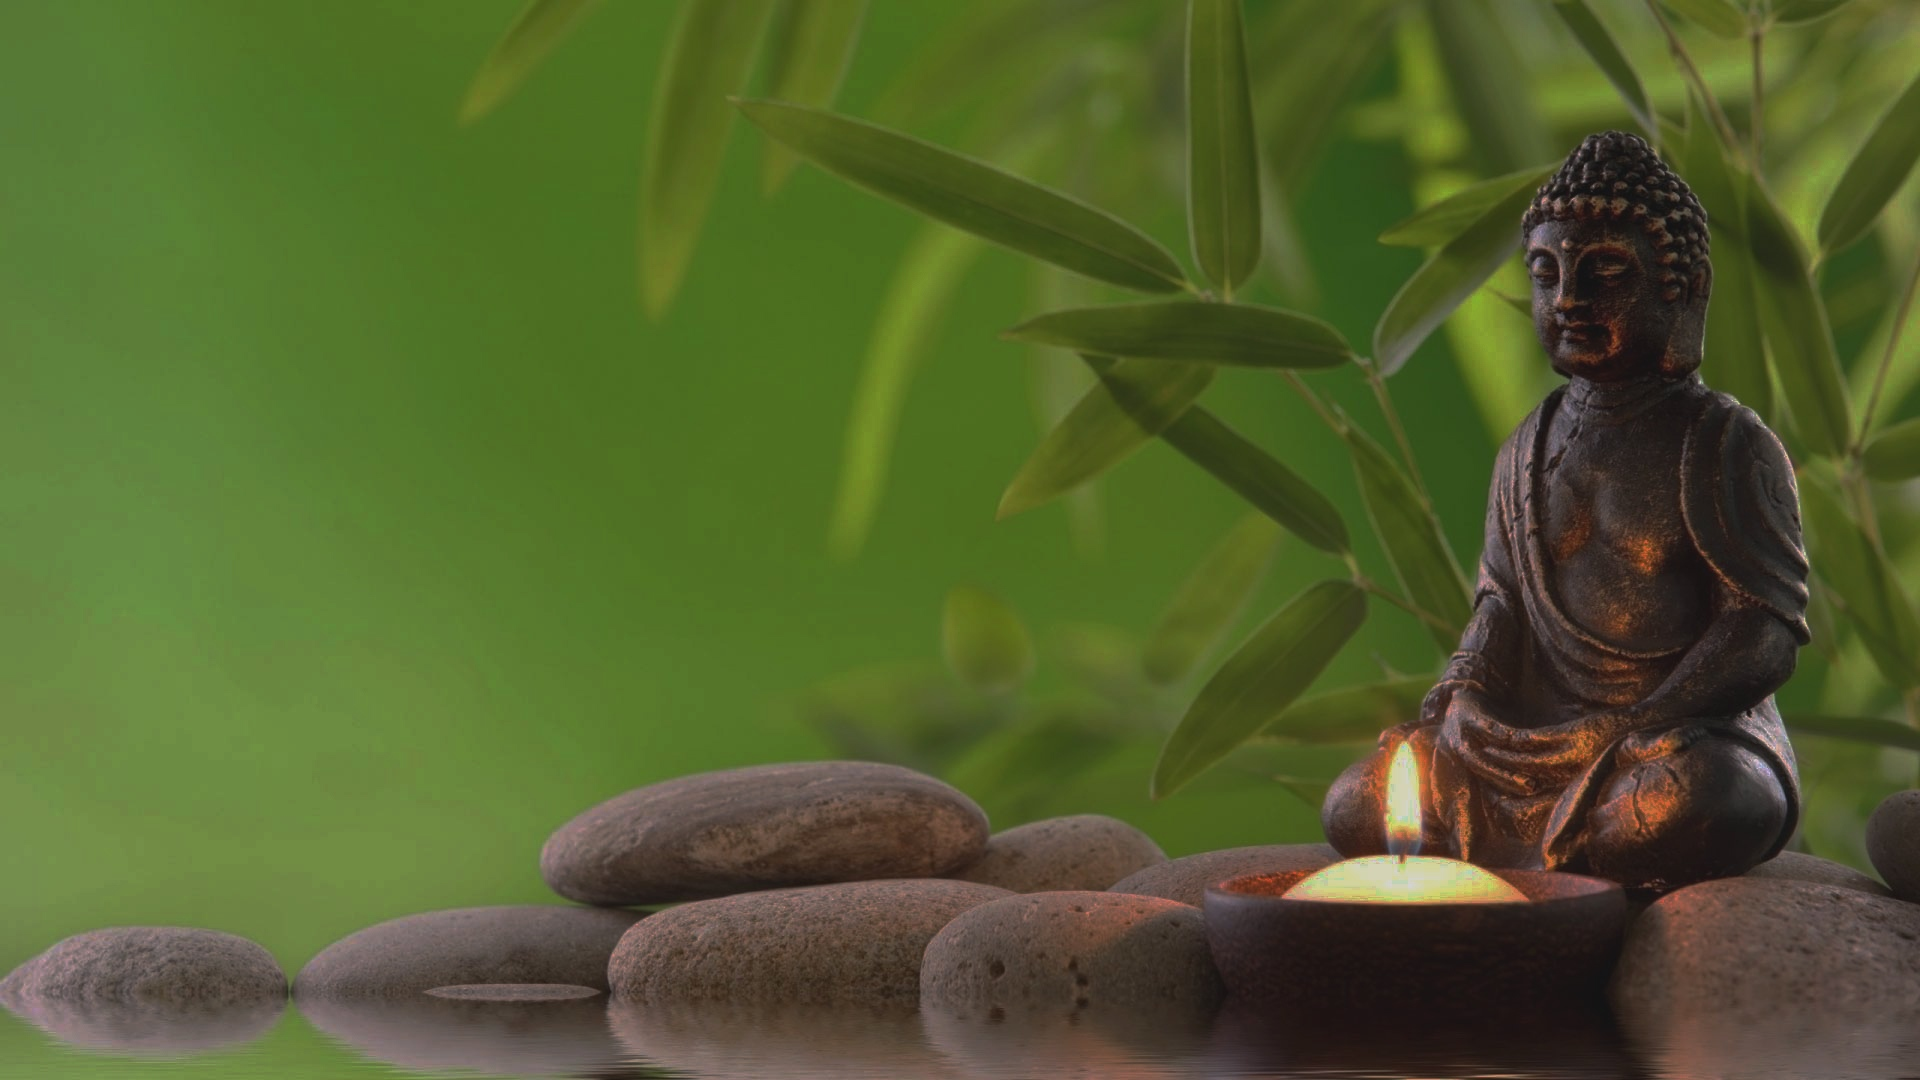 Reflexology is a relaxing holistic treatment performed on the feet, hands or ears